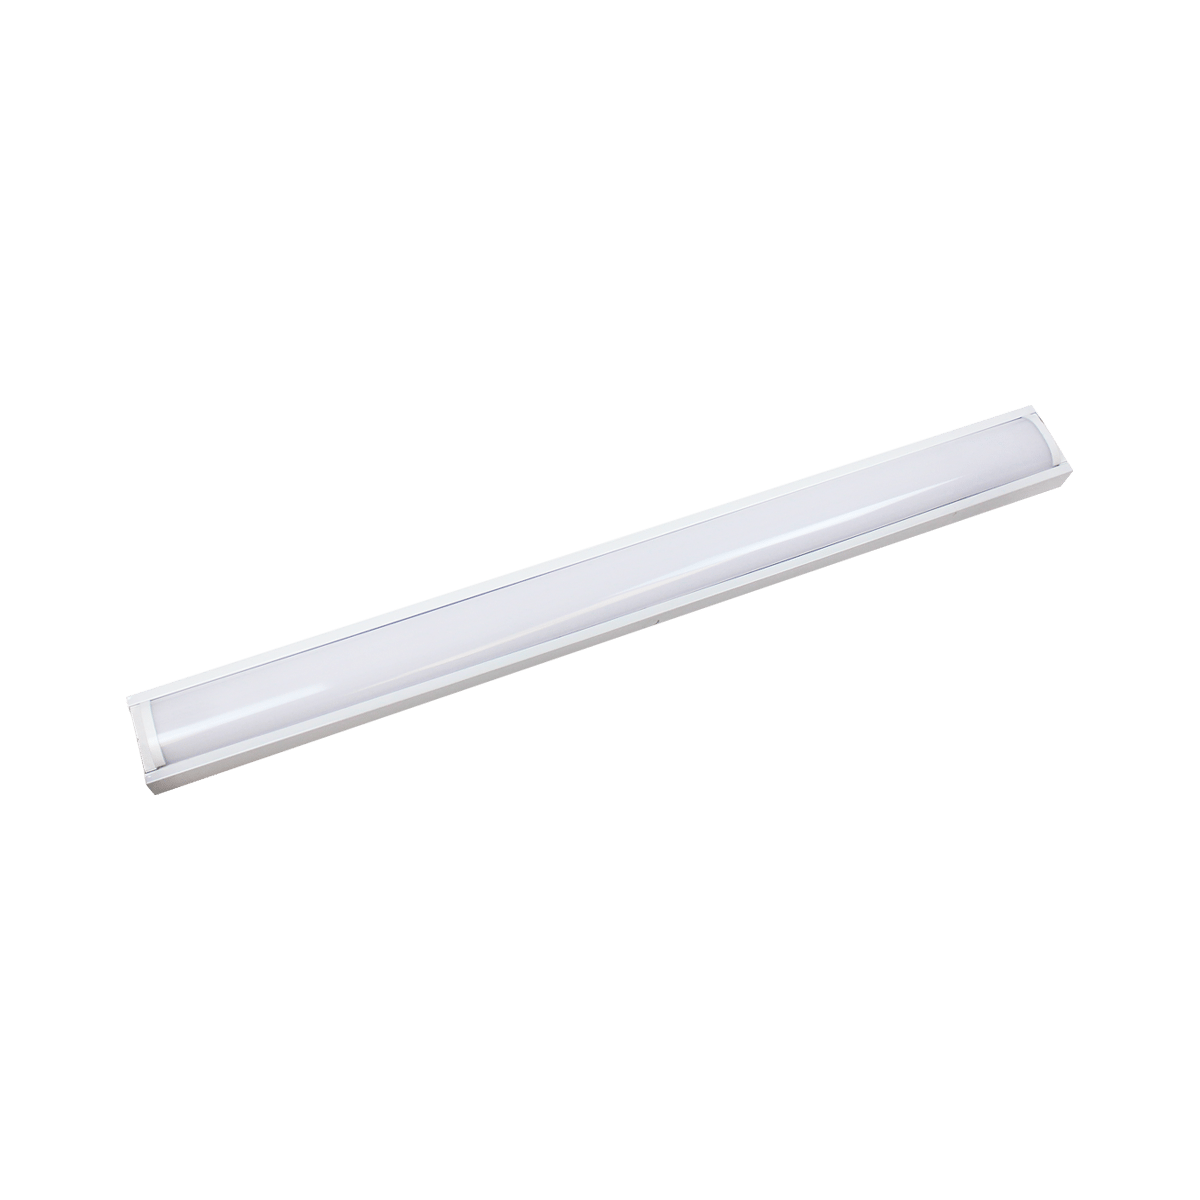 Commercial Lighting Manufacturers Usa: LED Commercial Strip 40W